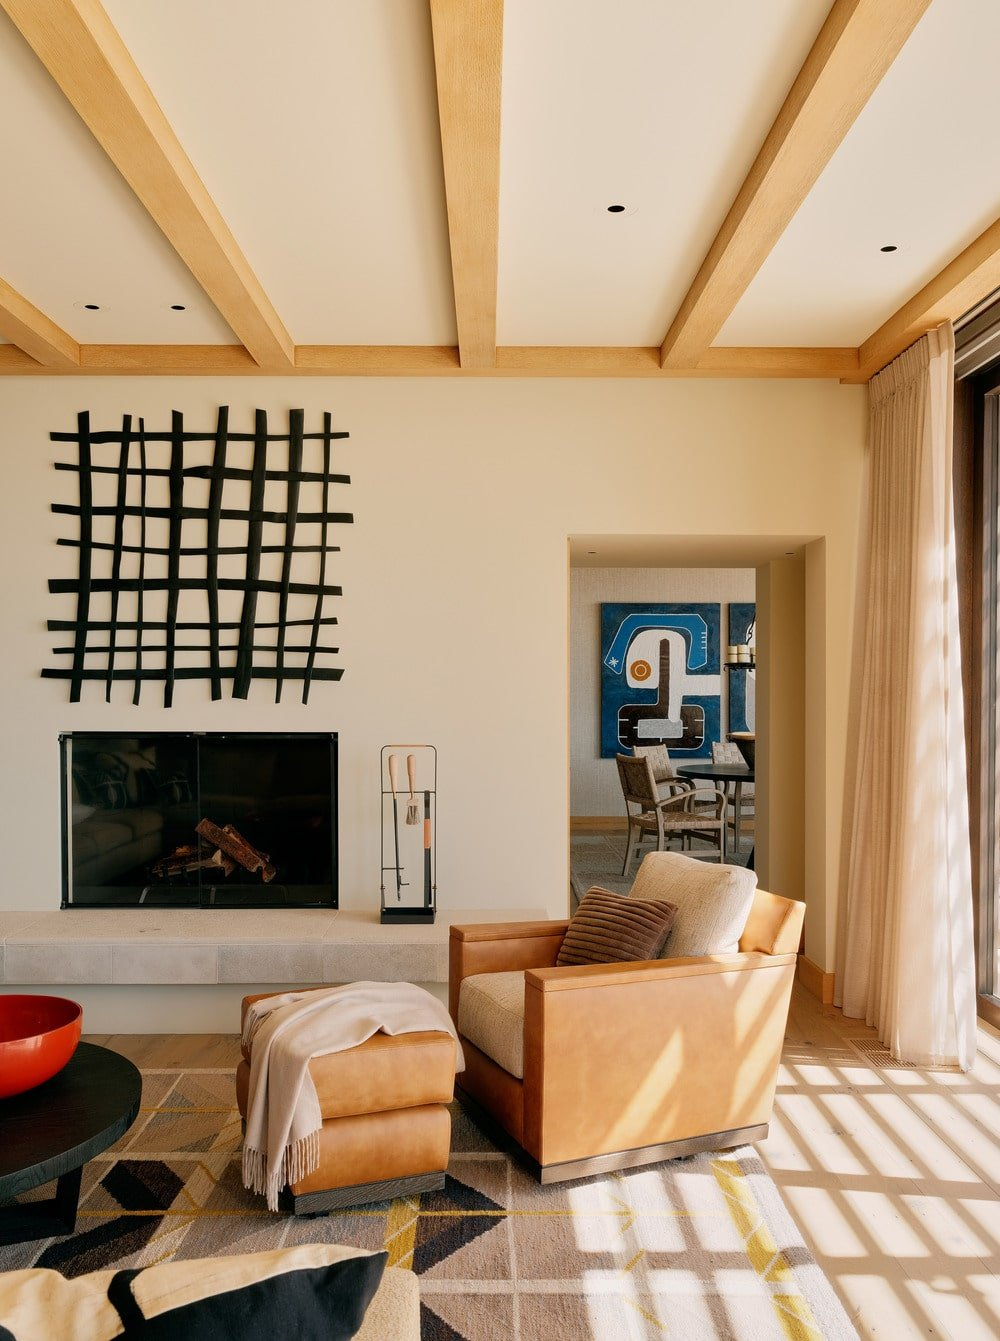 This is a living room a few steps from the dining room. It has a beige ceiling with exposed wooden beams that match well with the hue of the armchair beside the fireplace that stands out against the beige wall.